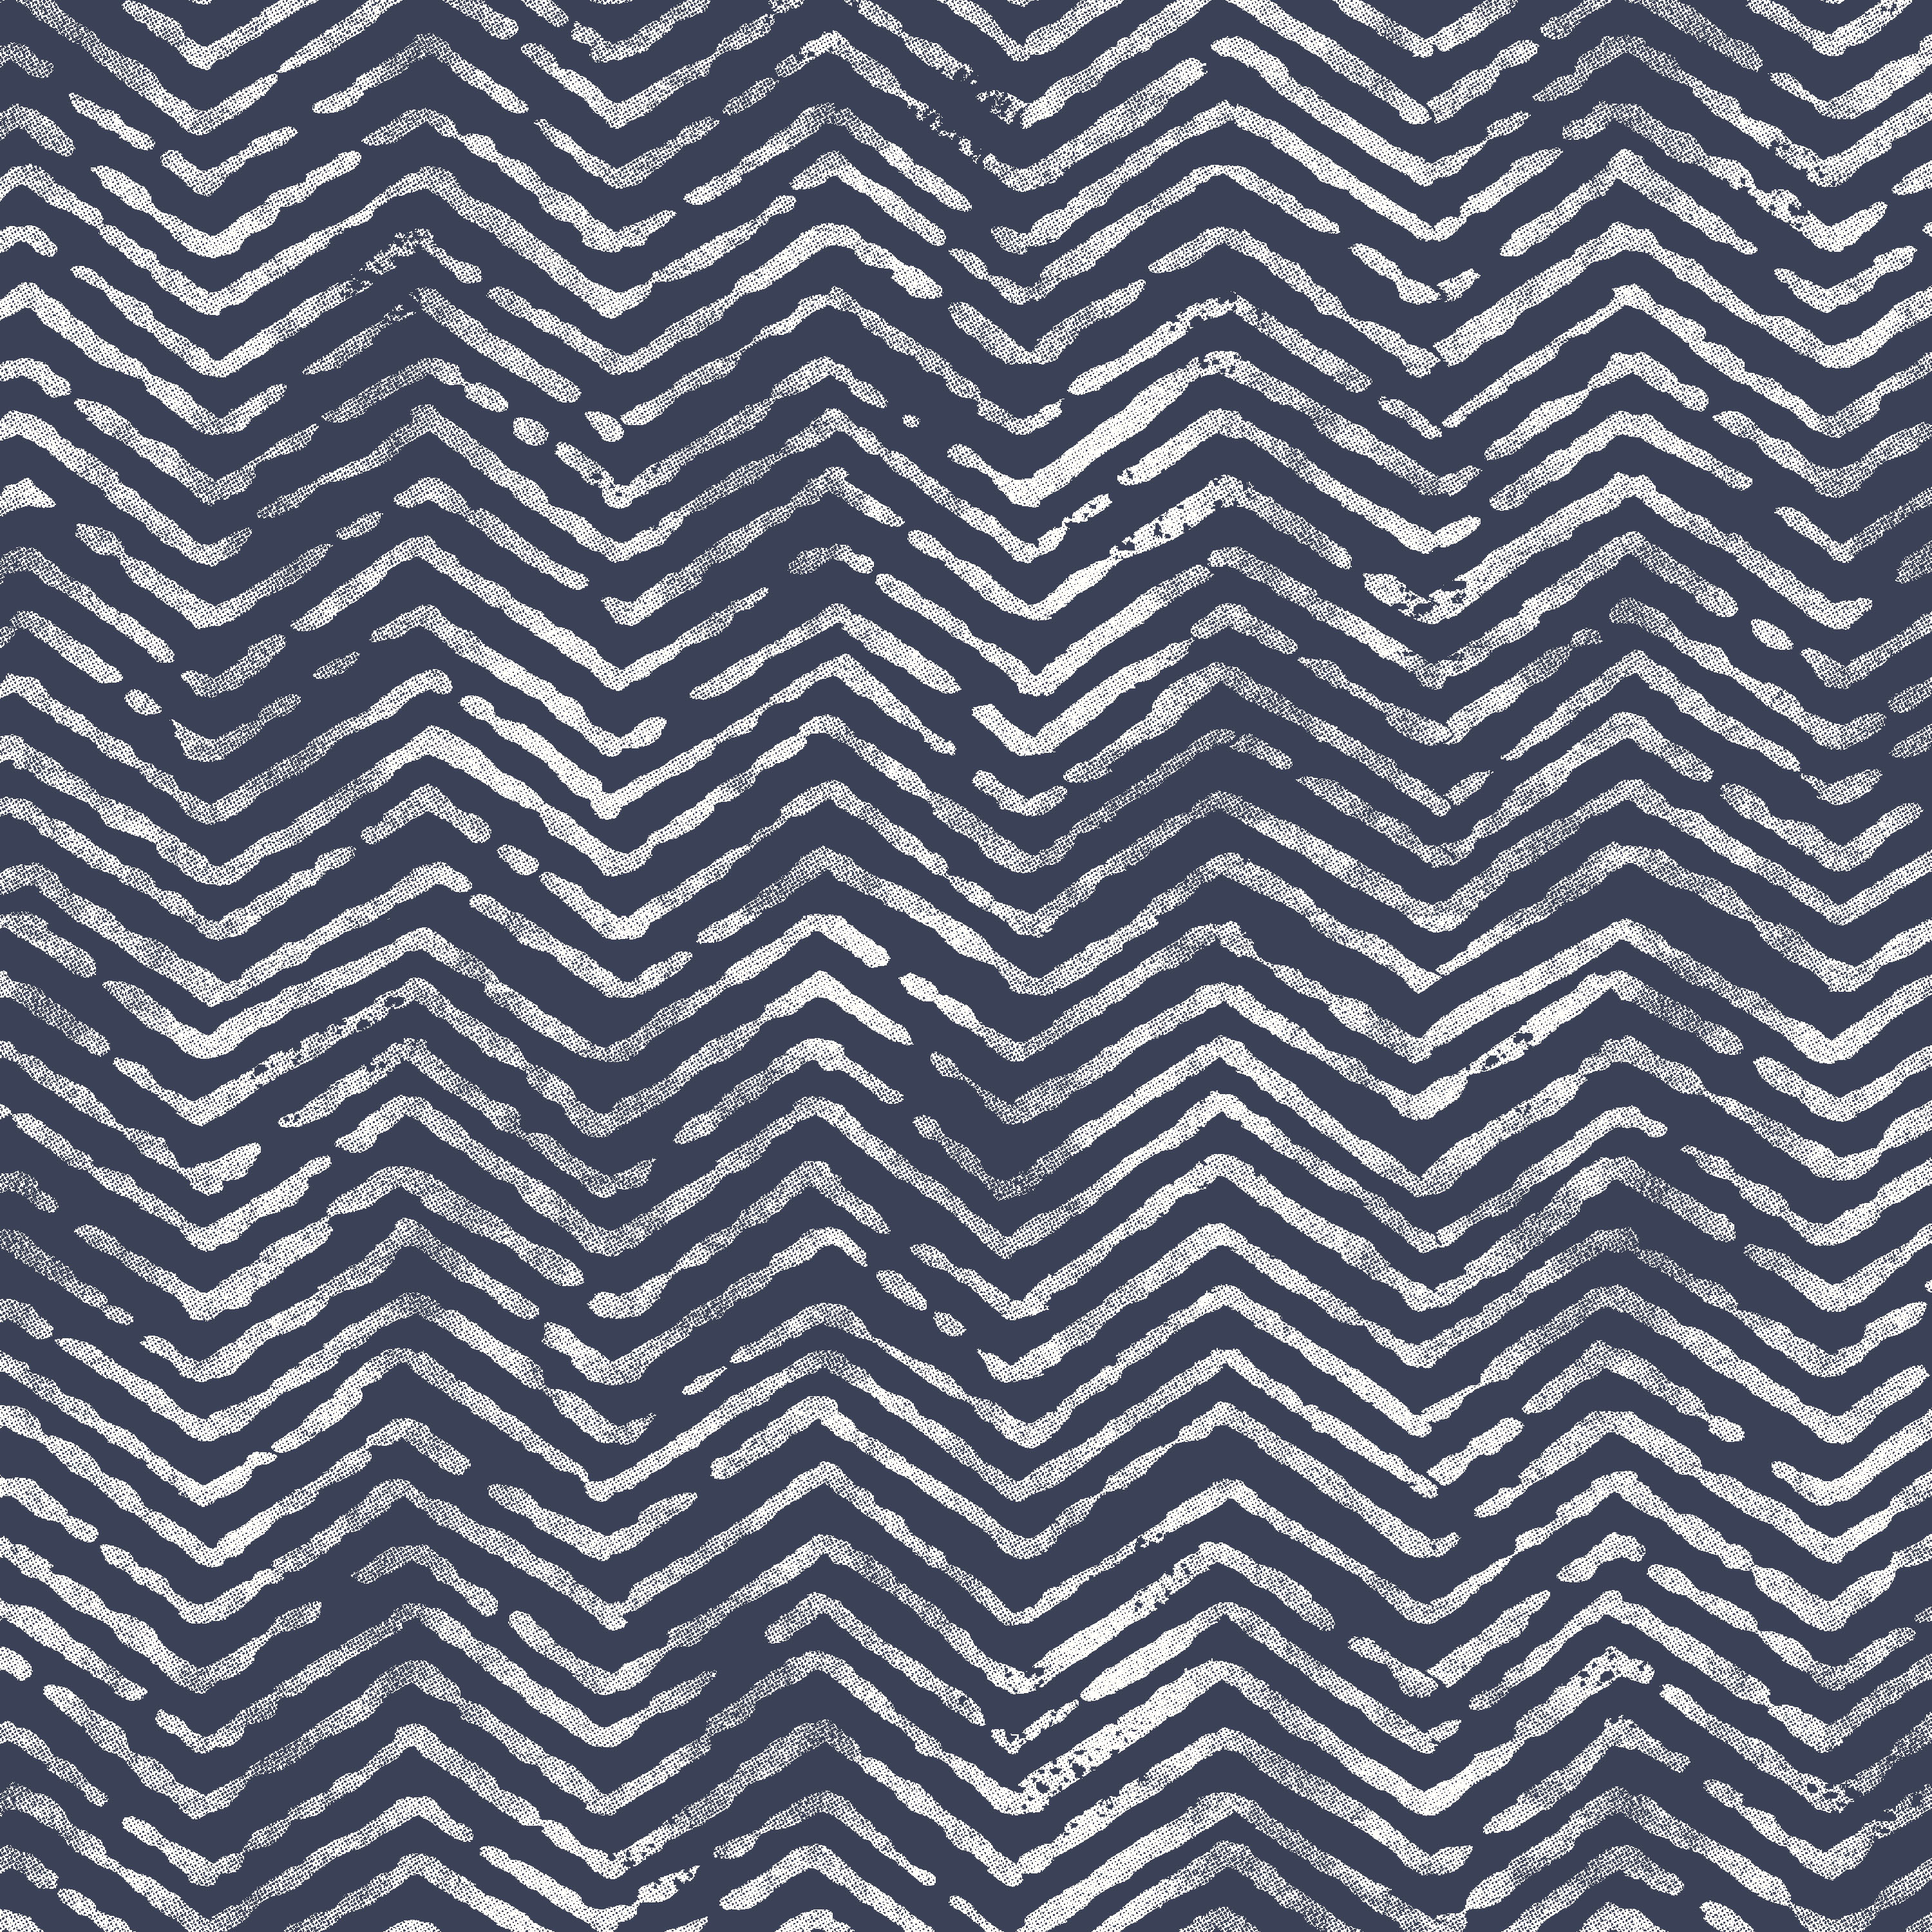 Waverly Inspirations Herringbone Navy 100% Cotton Duck Fabric 45'' Wide, 180 Gsm, Quilt Crafts Cut By The Yard